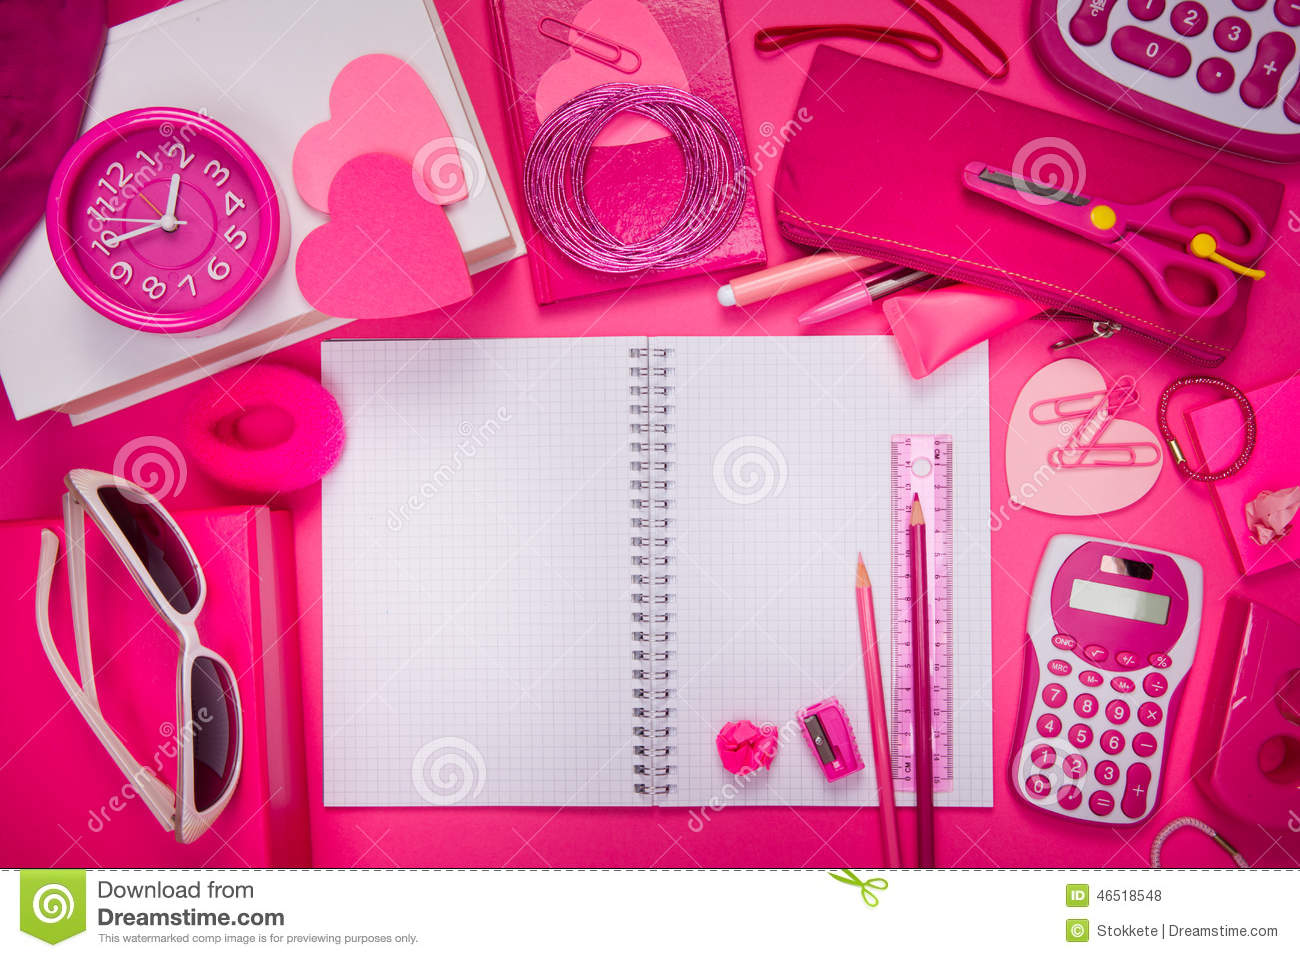 Girly Pink Desktop And Stationery Stock Photo - Image ...